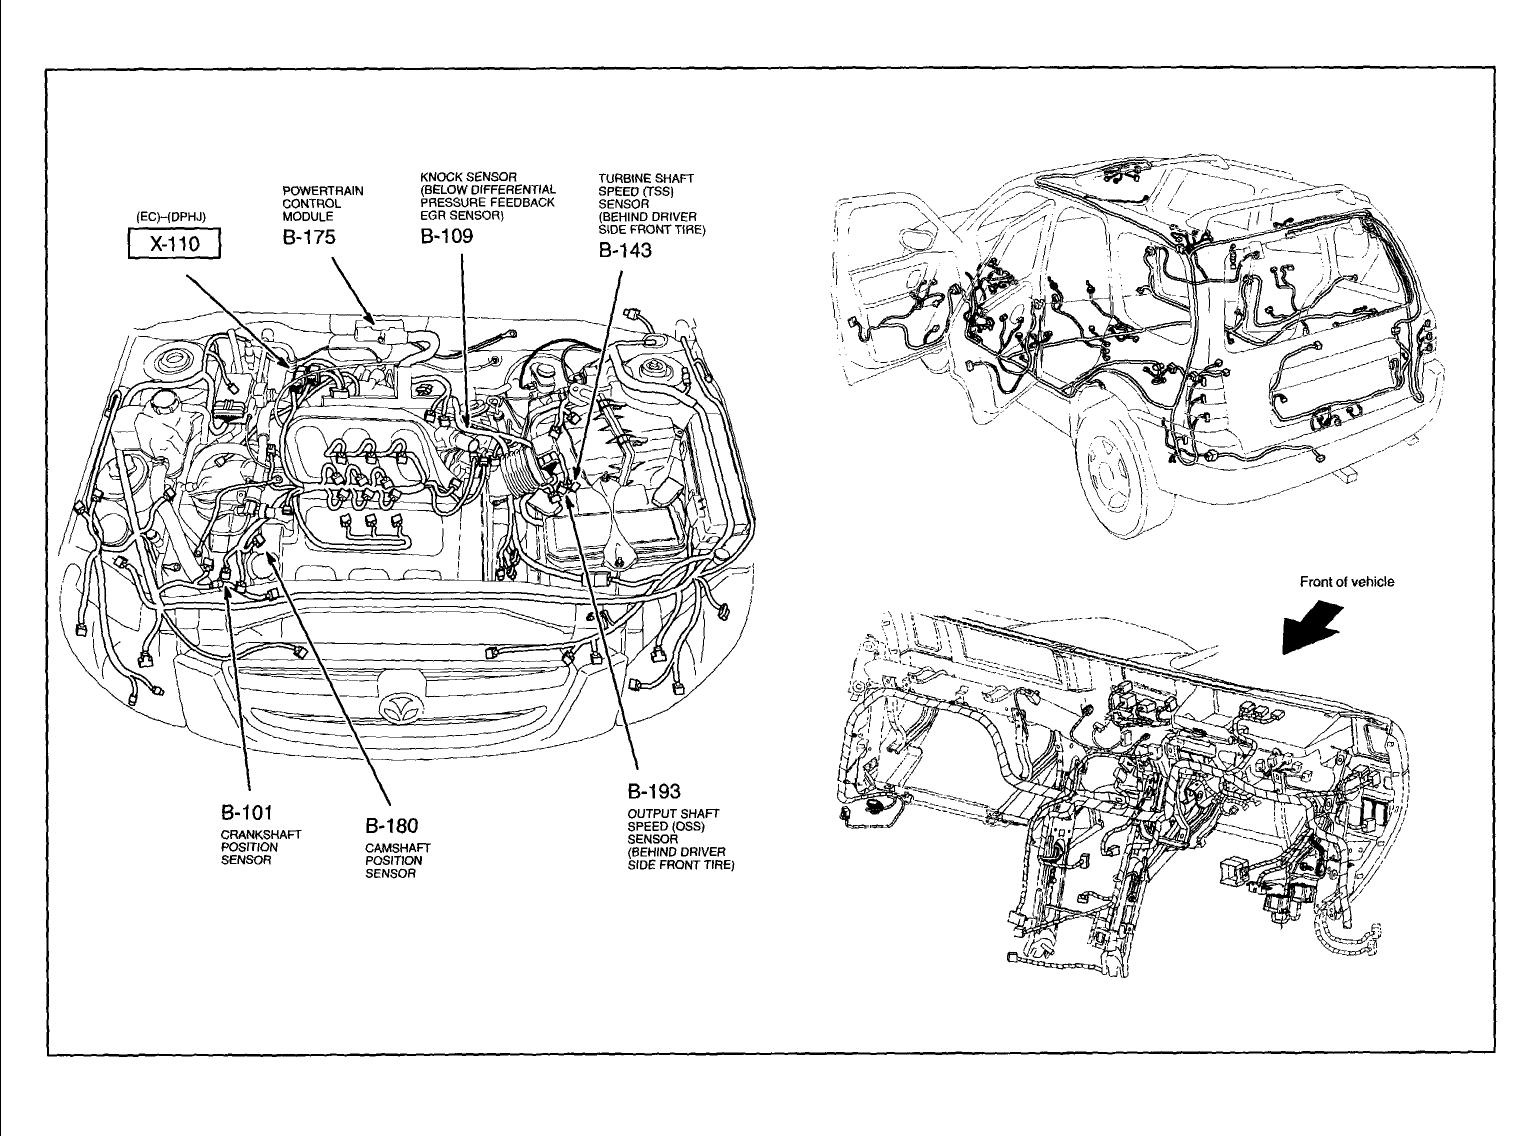 Mazda Mx3 Engine Diagram Data Schematics Wiring 1999 B3000 Camshaft Sensor Mx 3 Questions Whear Is The Crankshaft Sencer Locatiom On A Rh Cargurus Com Swap Mx31993